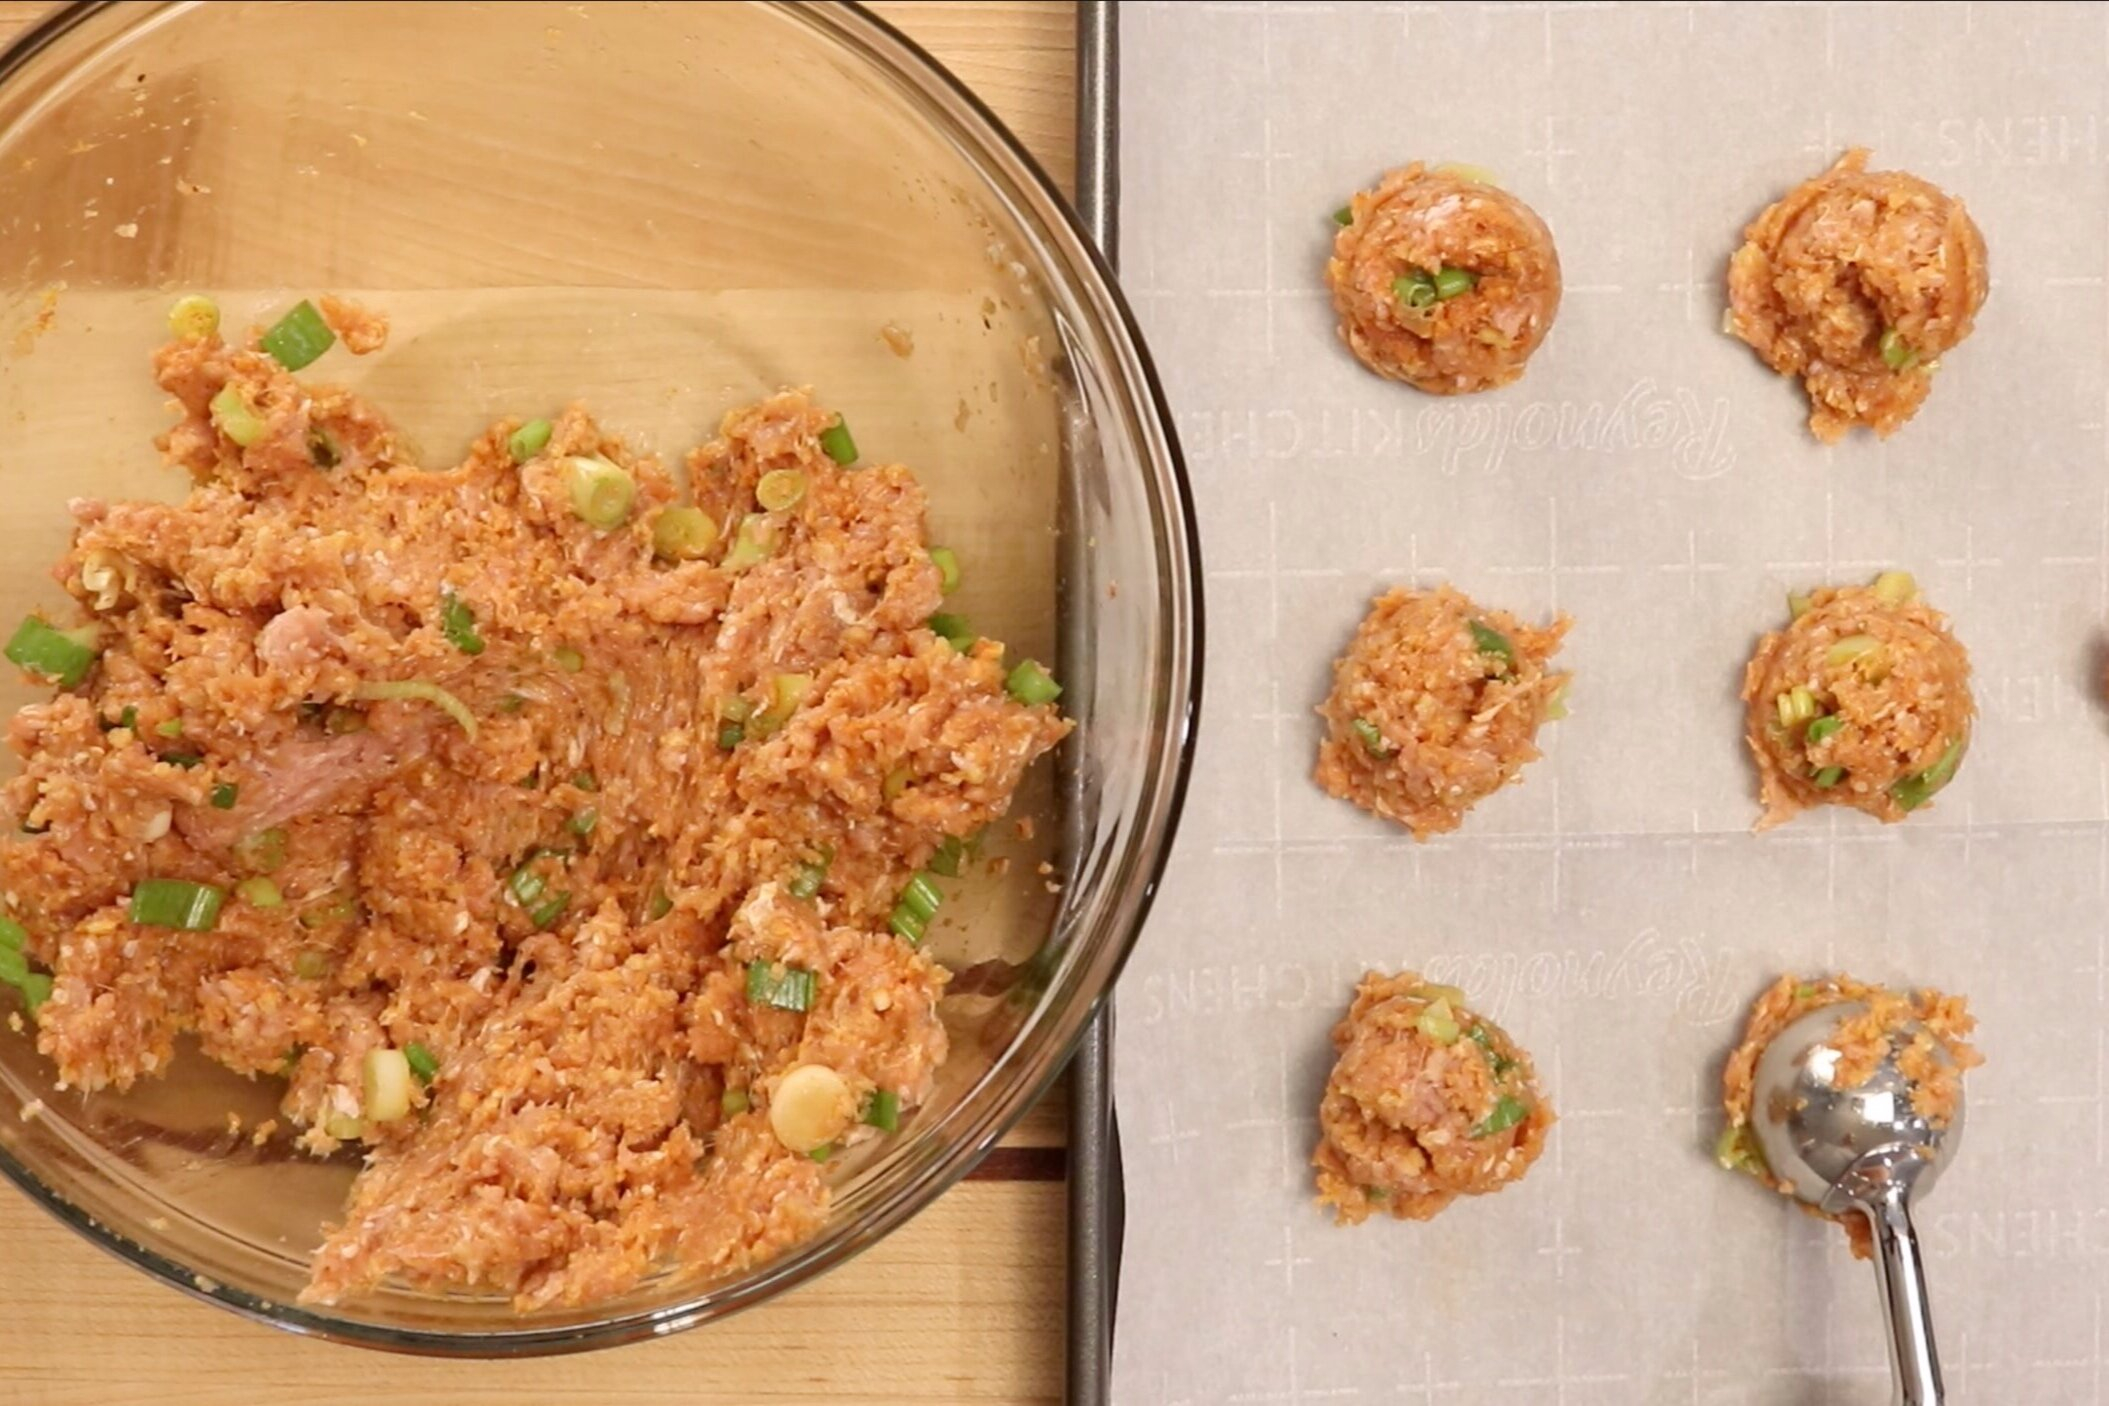 3. Make small balls of the turkey mixture using a spoon or a small scoop. Place on the baking sheet. You should have around 24 small meatballs. -